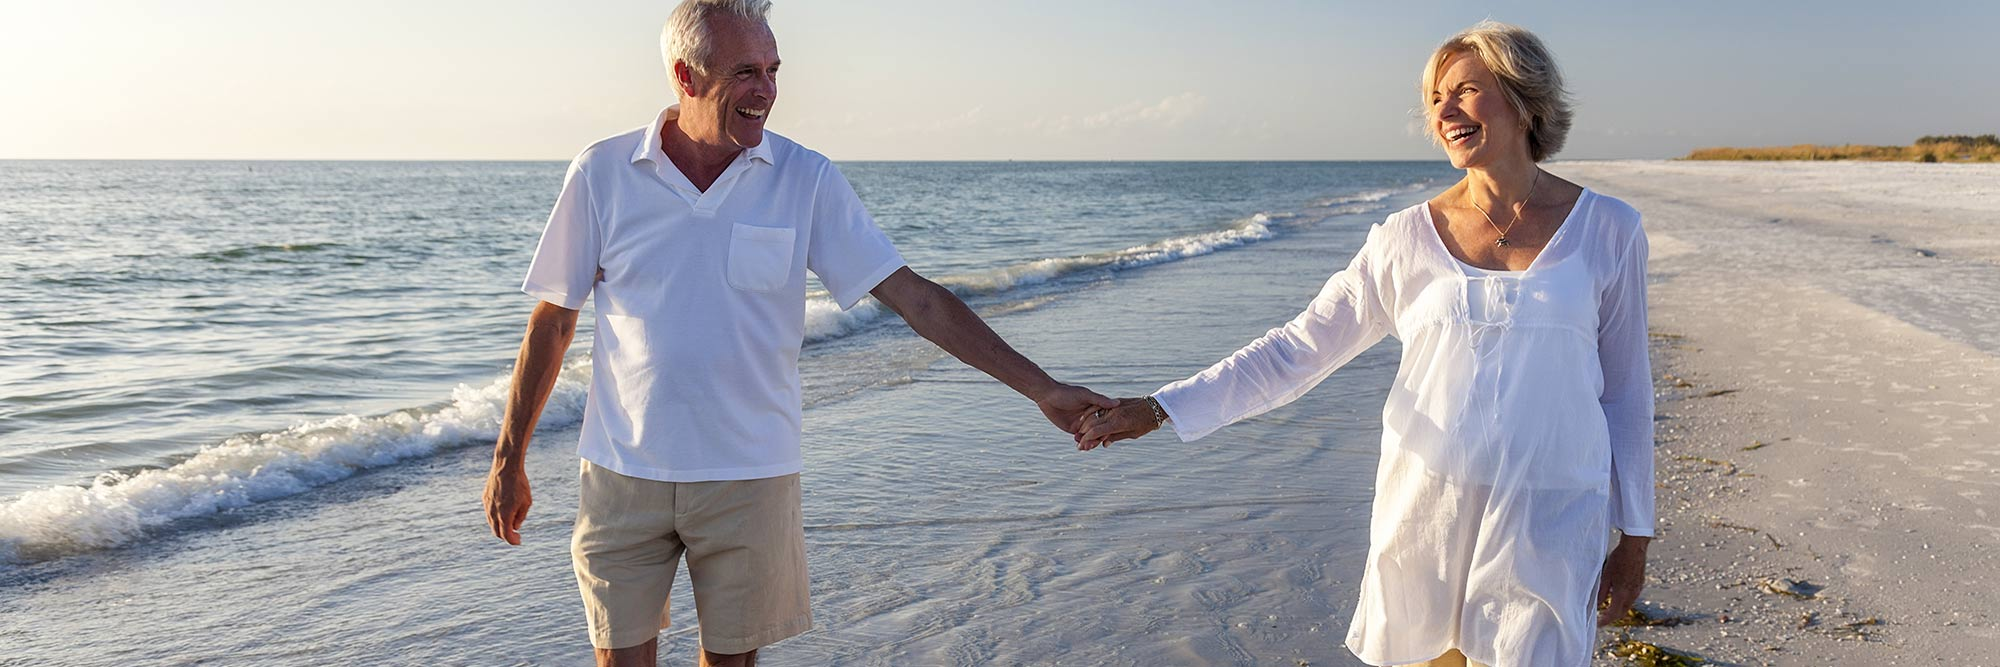 banner-healthy-aging-certificate Senior couple takes a walk on the beach hand-in-hand.